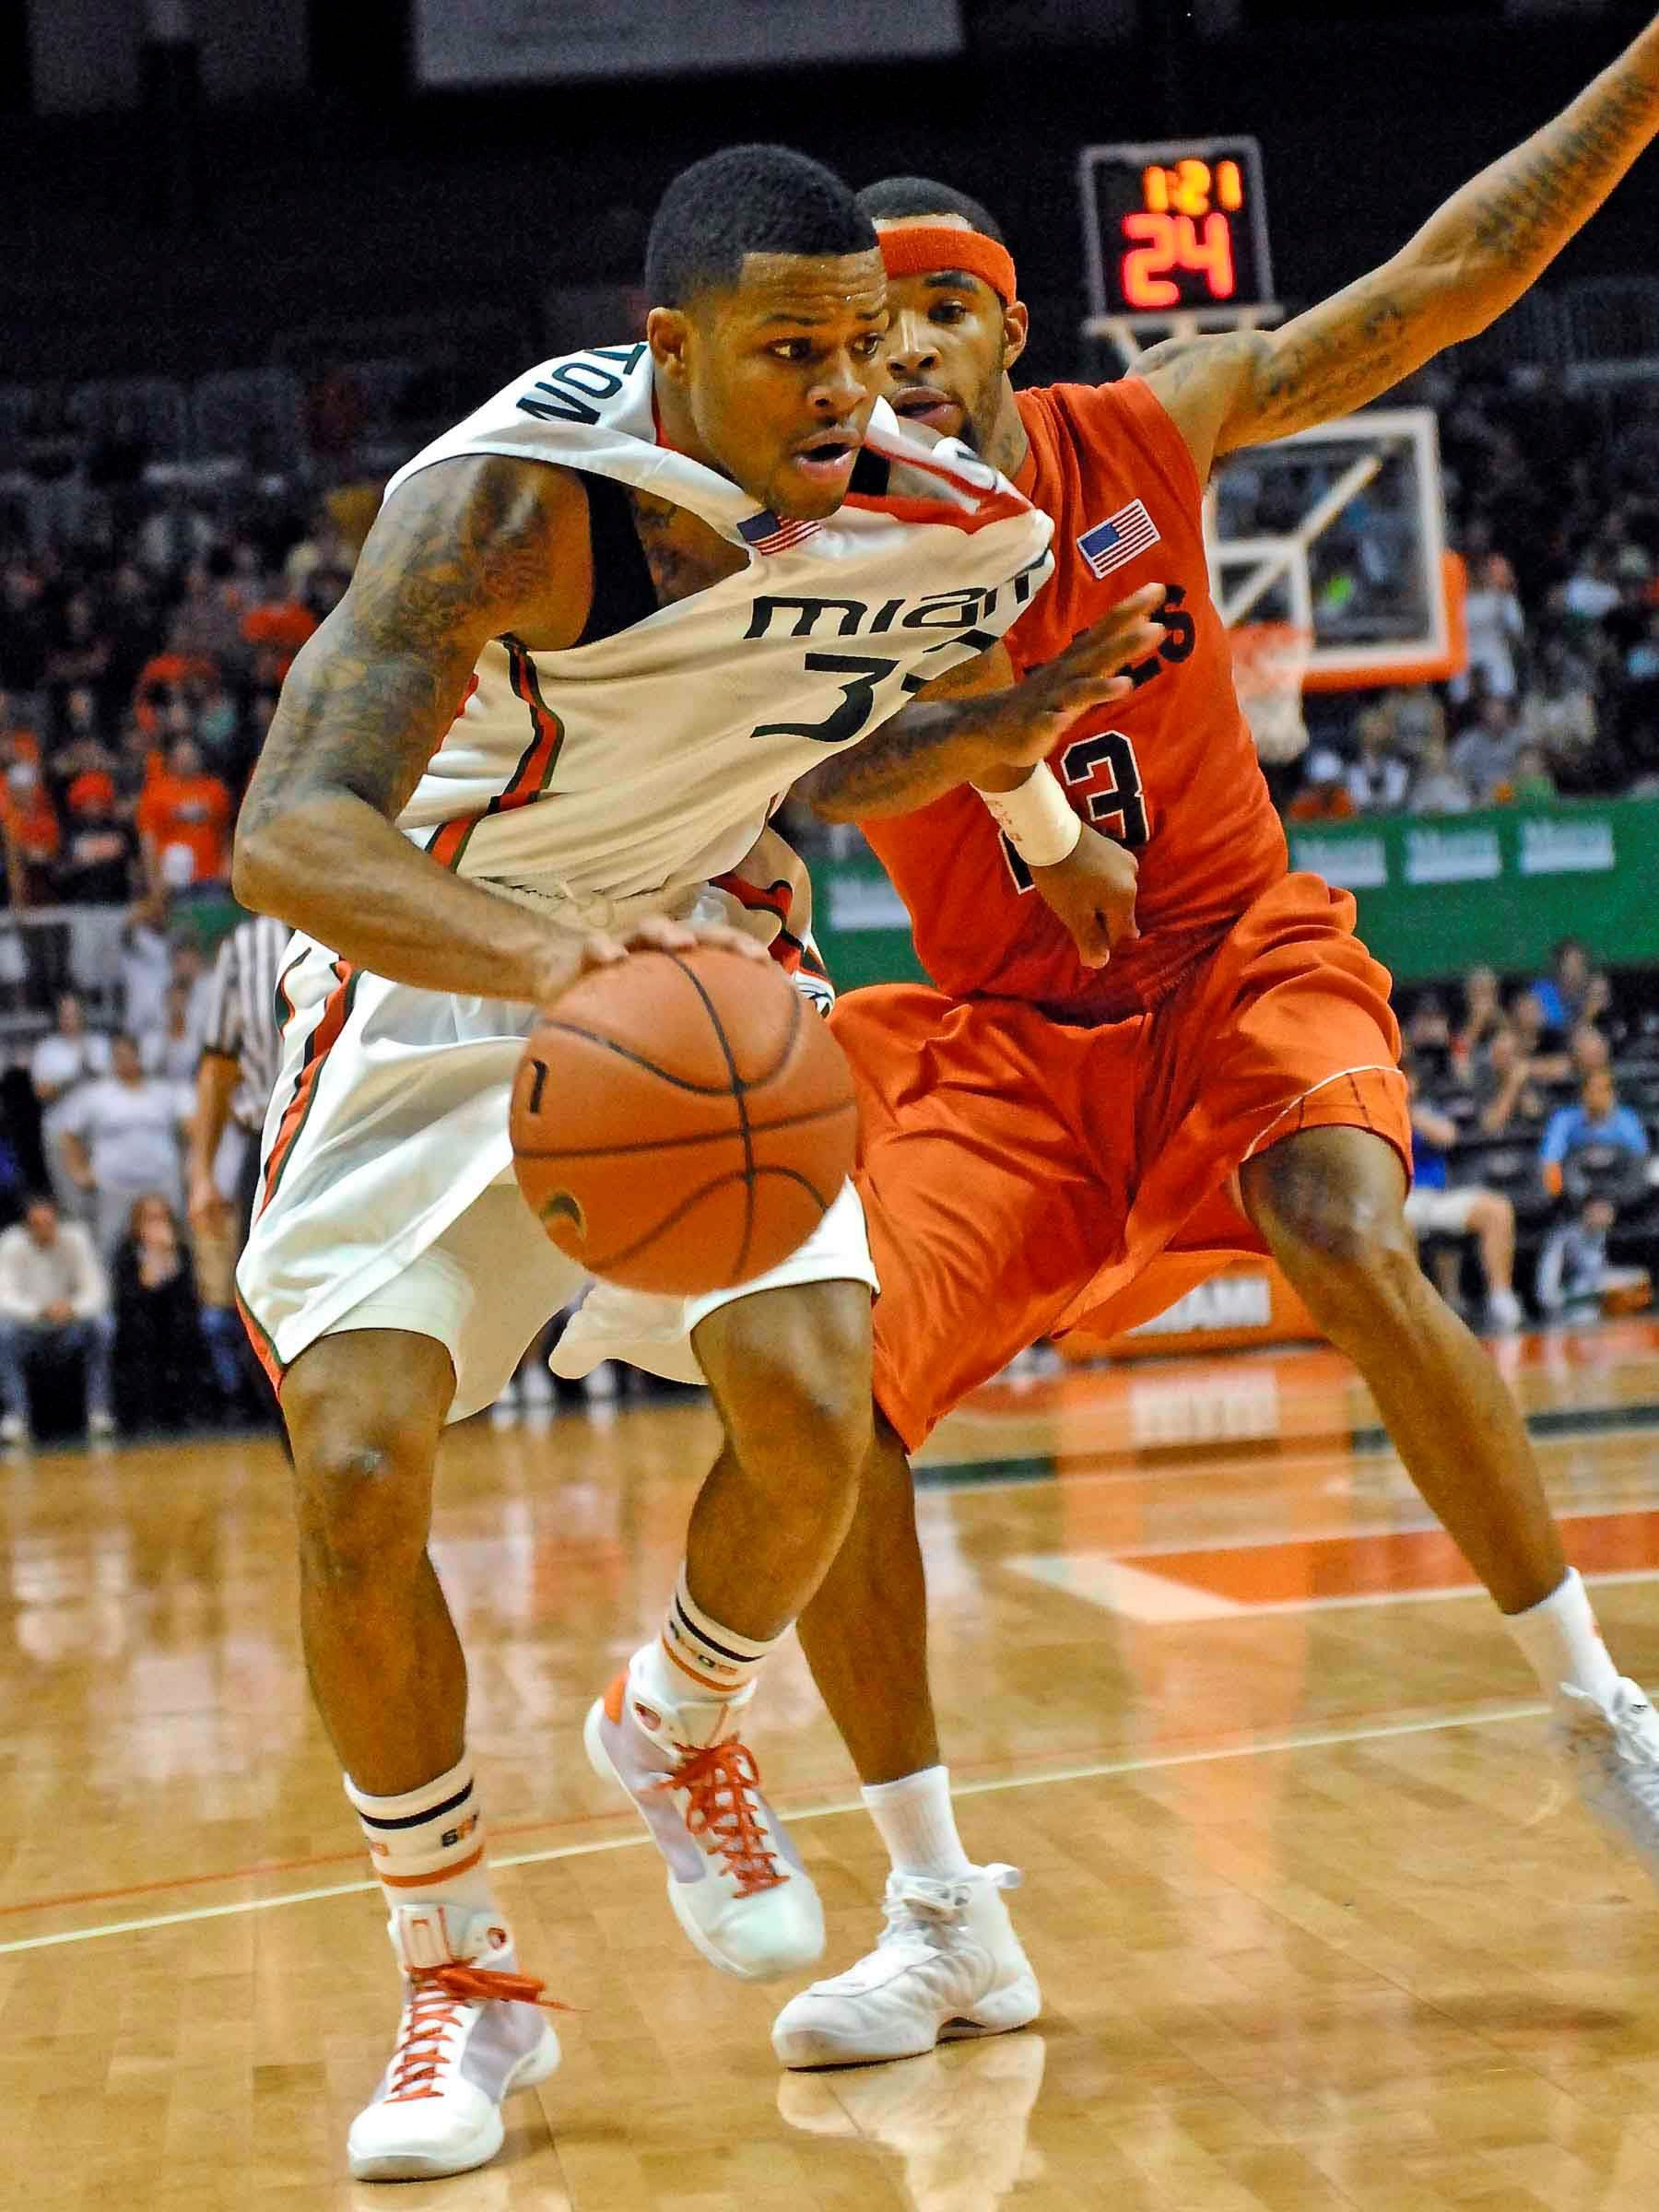 Jack McClinton and Malcolm Delaney had a classic battle at the BUC earlier this season. They'll face each other again Thursday.